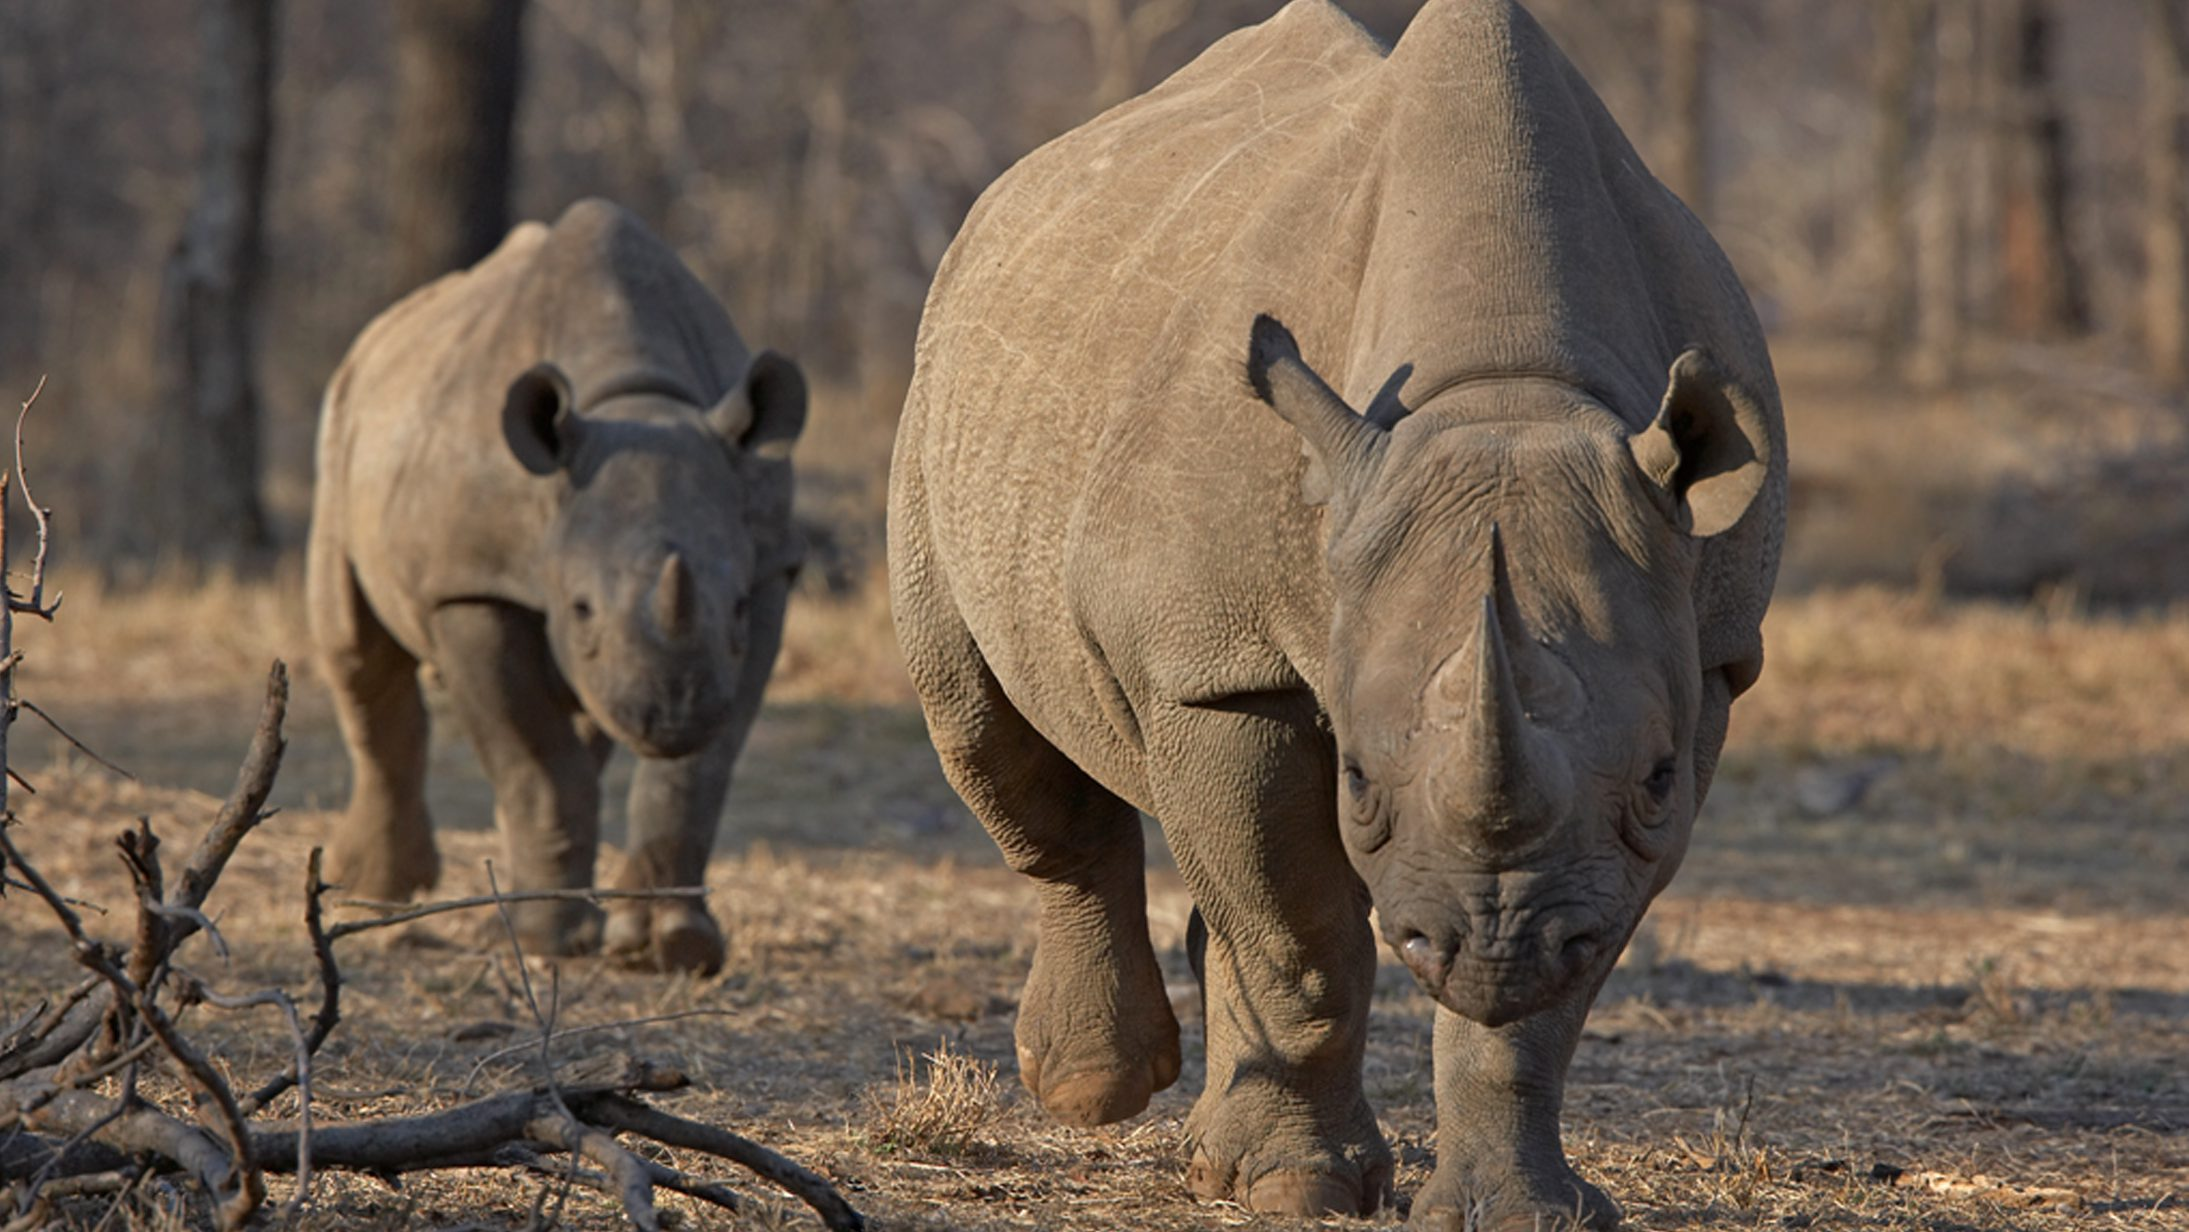 An endangered east African black rhino and her young one walk in Tanzania's Serengeti park